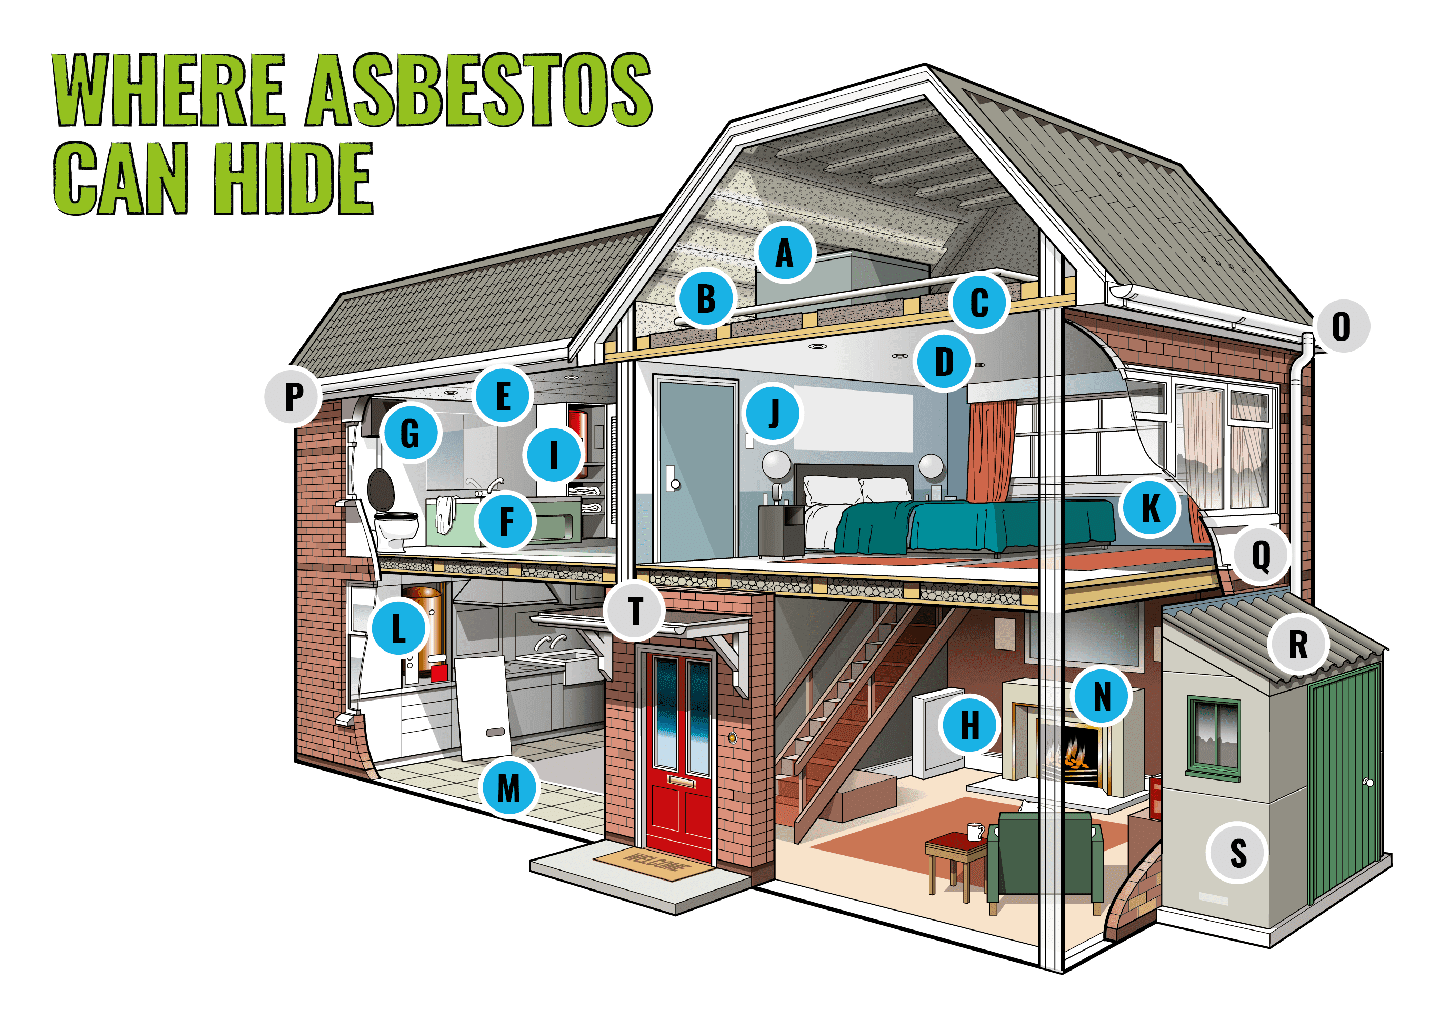 Diagram showing places within the home that Asbestos could be found